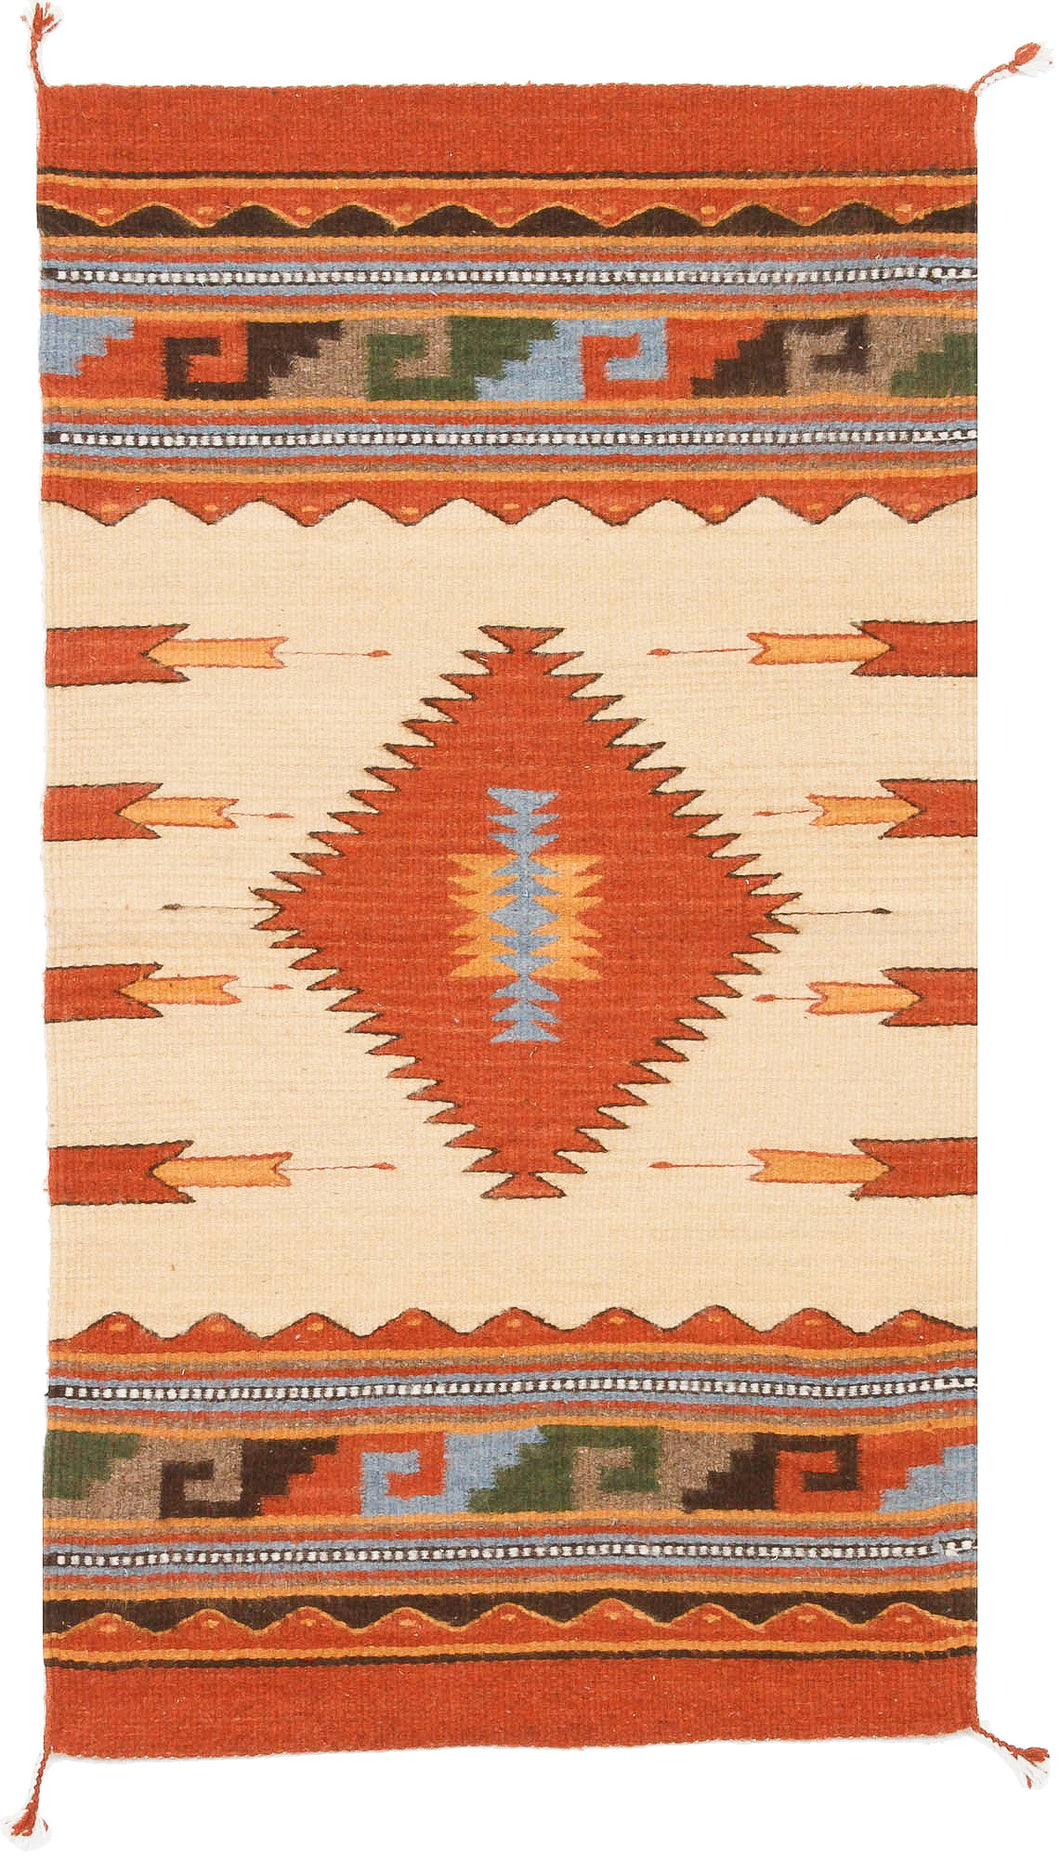 Handwoven Zapotec Indian Rug - Diamantes y Maguey Wool Oaxacan Textile